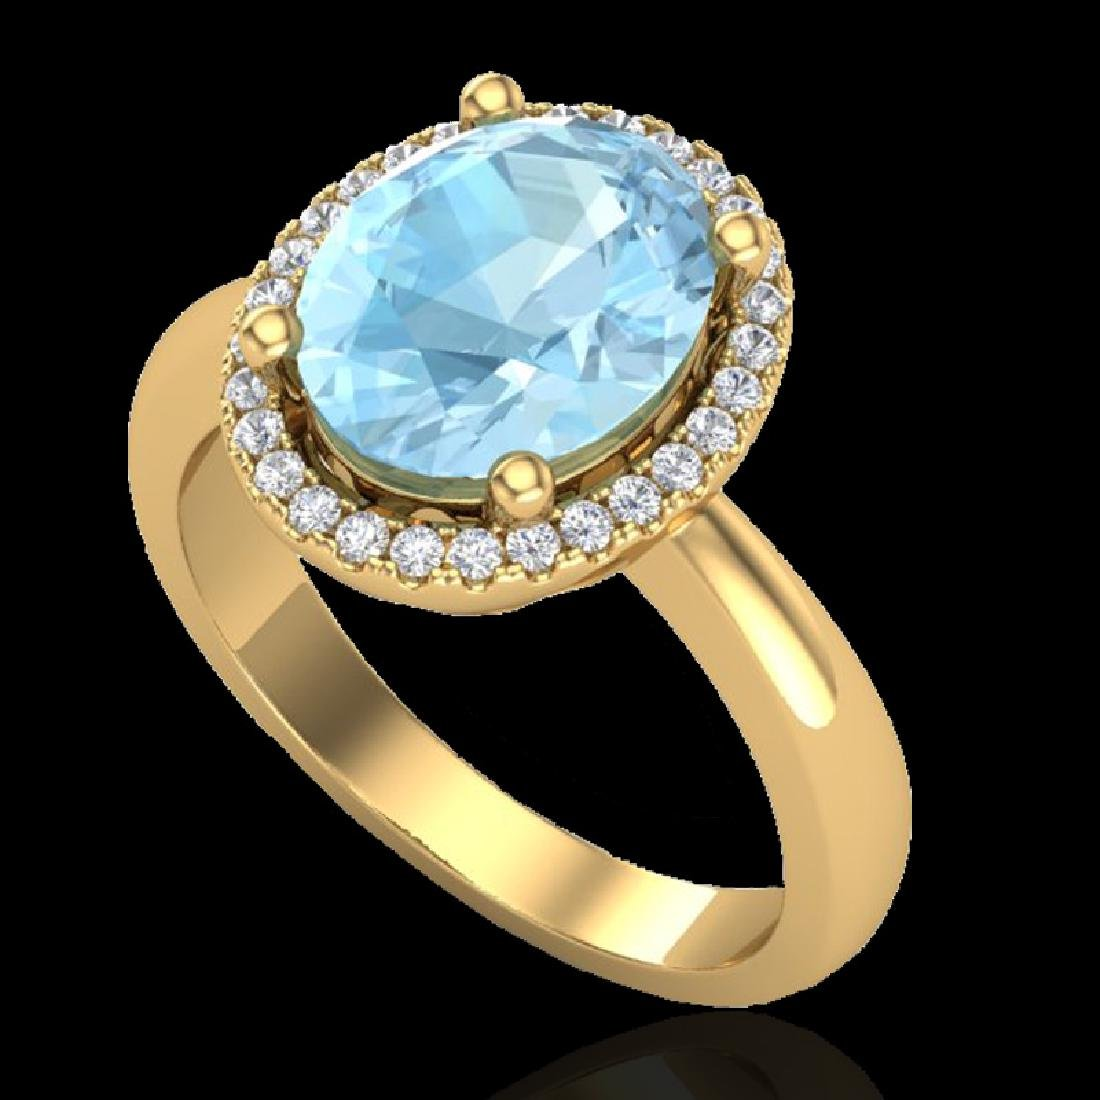 2.50 CTW Aquamarine & Micro Pave VS/SI Diamond Ring - 2